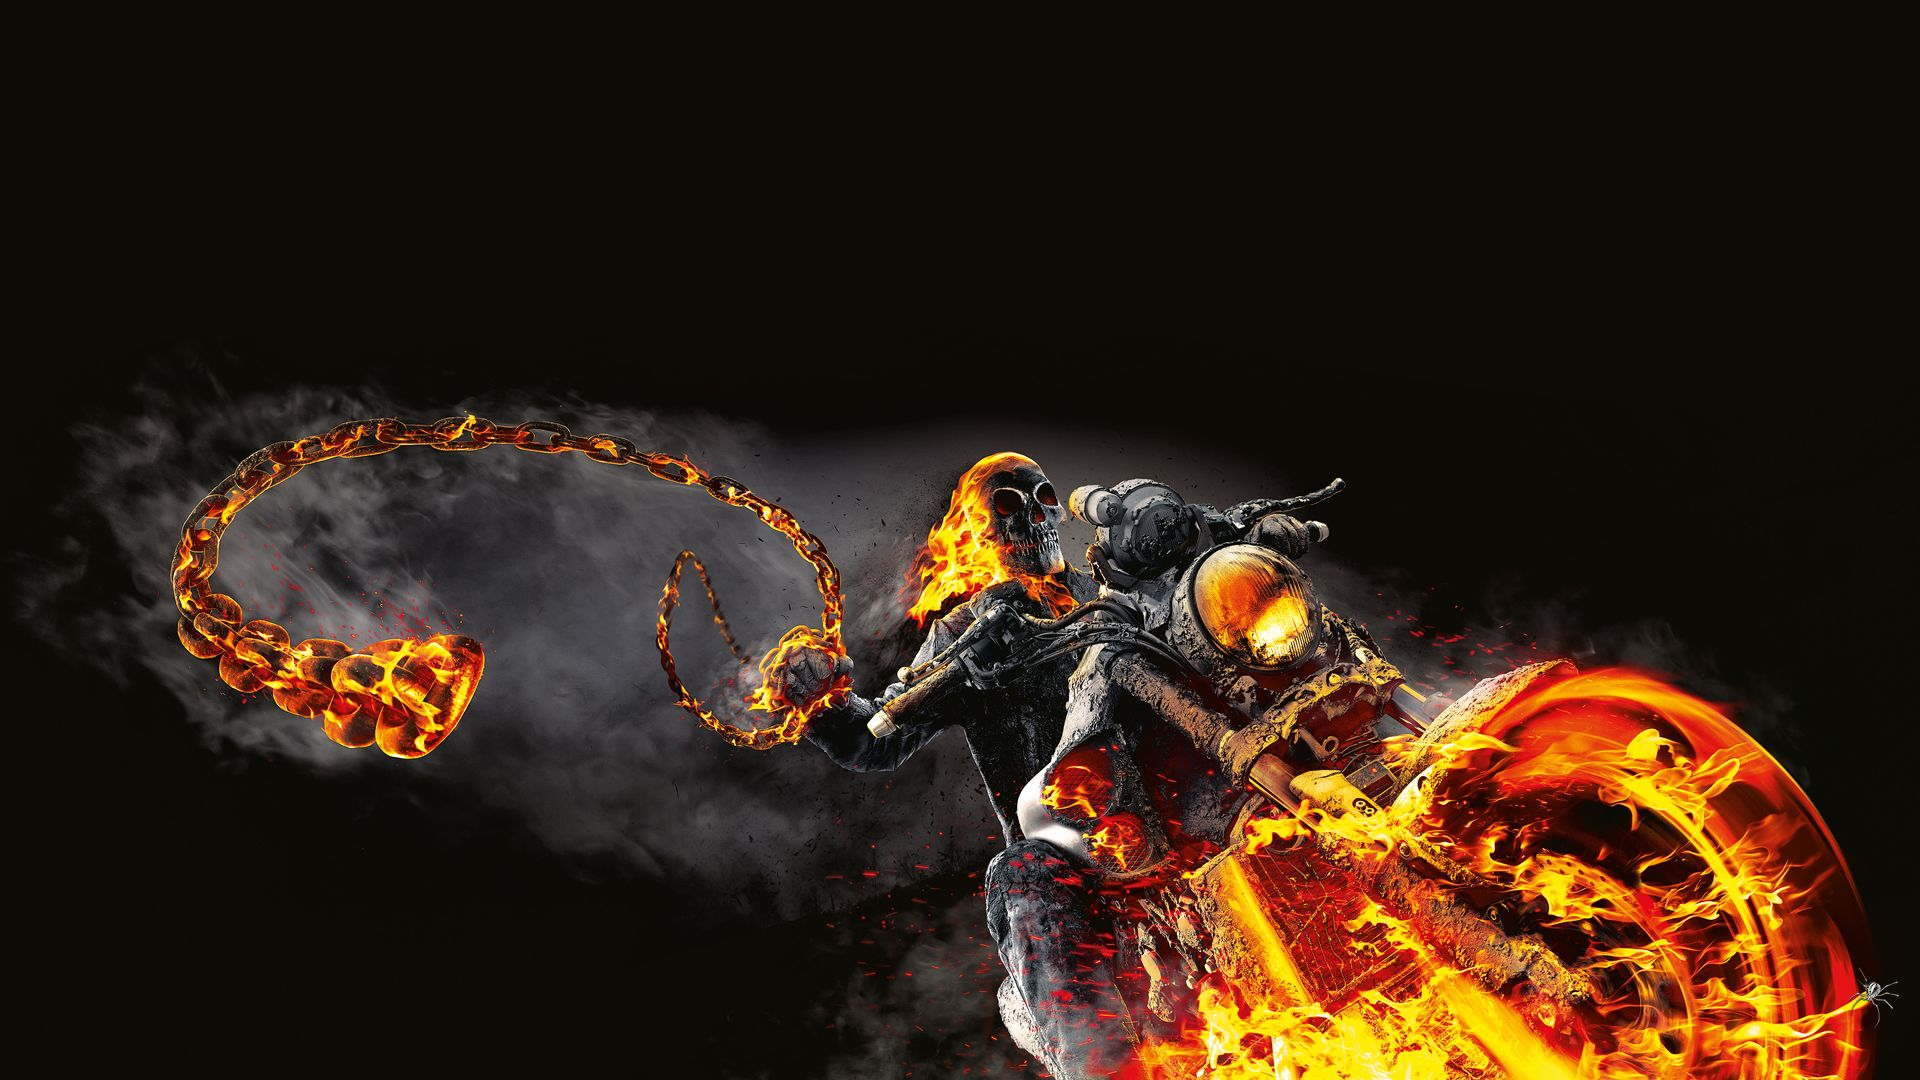 Ghost Rider Spirit Of Vengeance Hd Wallpapers Backgrounds